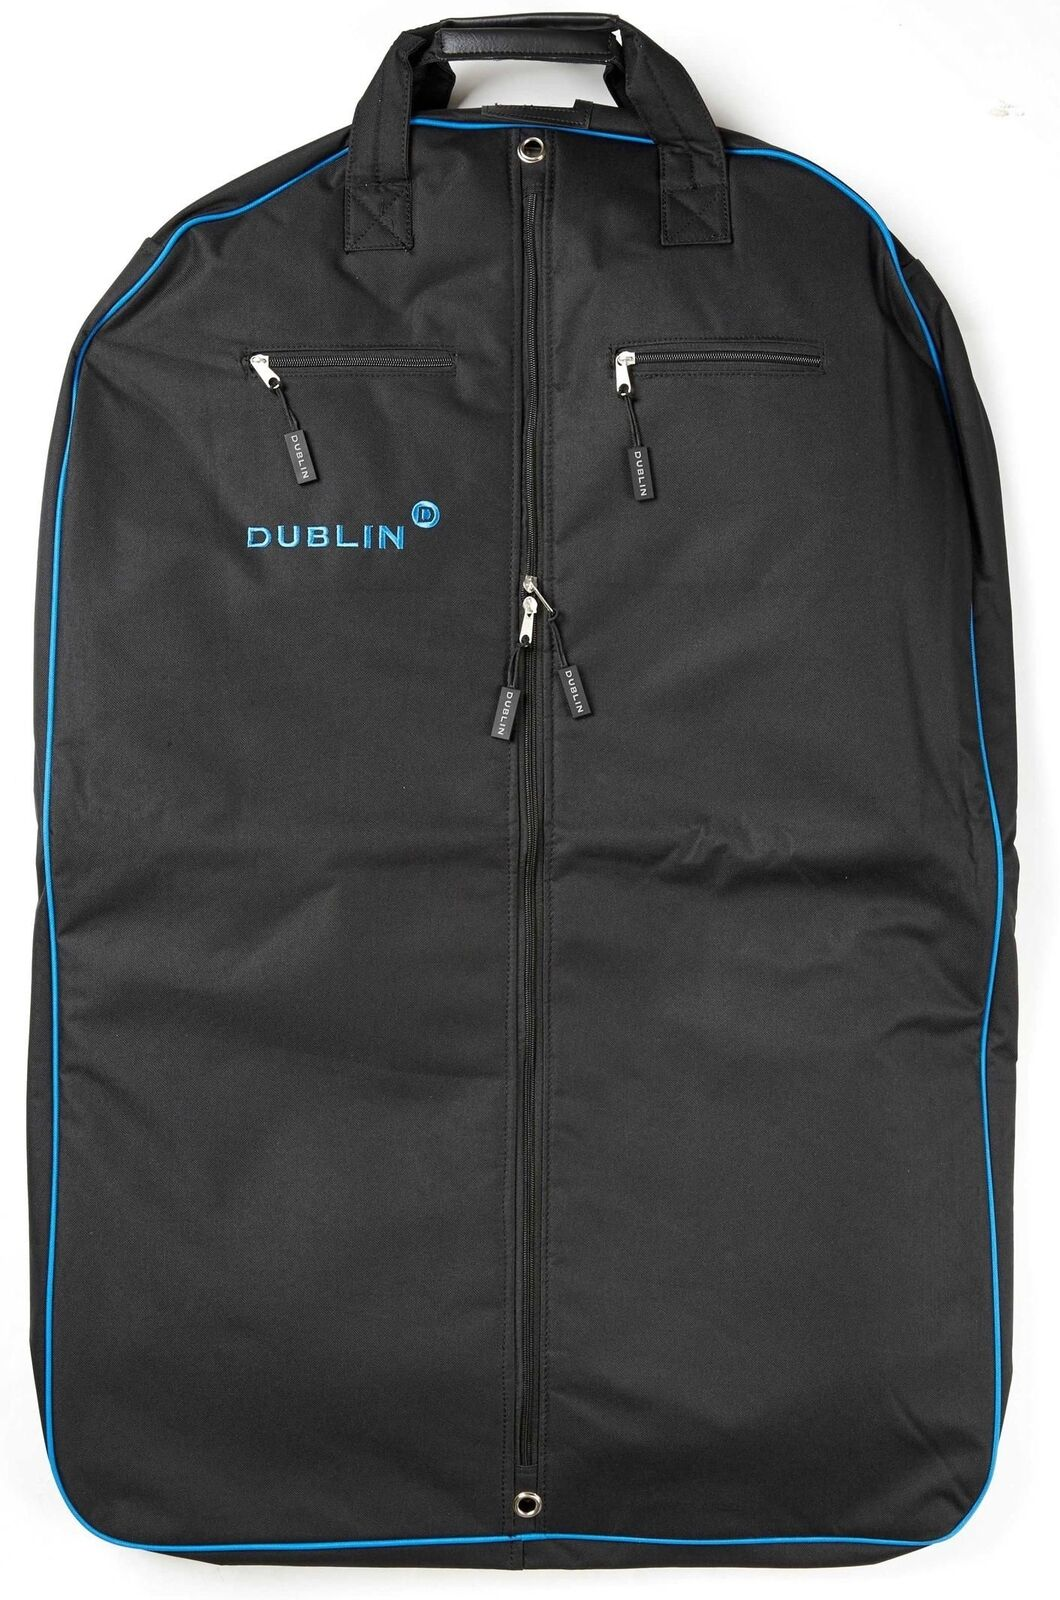 Dublin Imperial Coat Bag Zip up coat bag to prevent dirt getting inside. Carry h